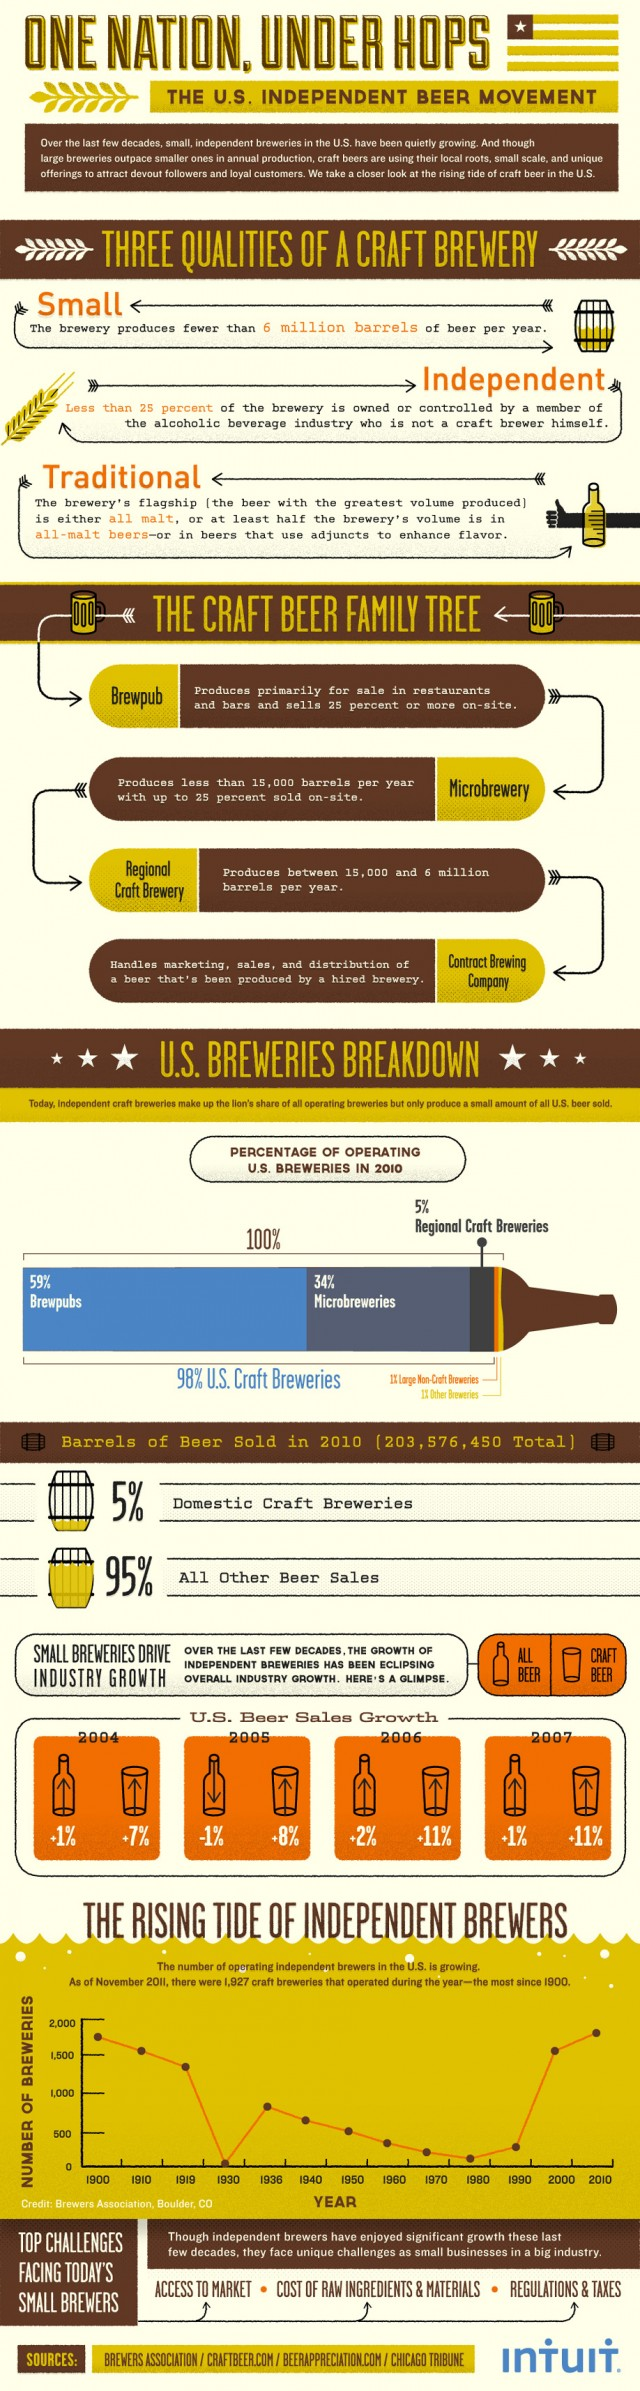 Independent Beer Movement Statistics